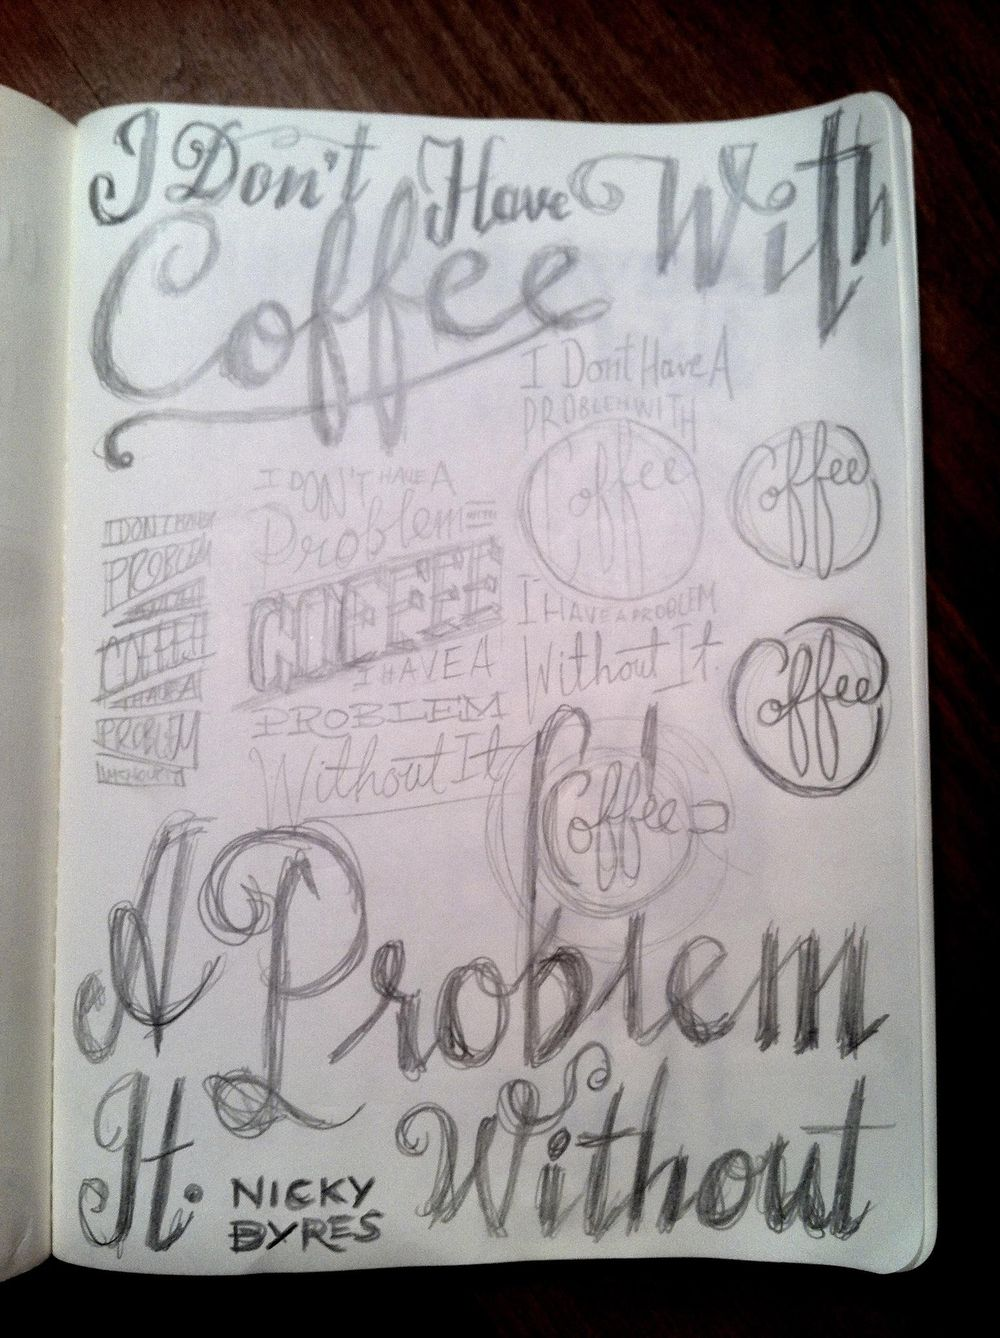 I Don't Have A Problem With Coffee, I Have One Without It - image 8 - student project